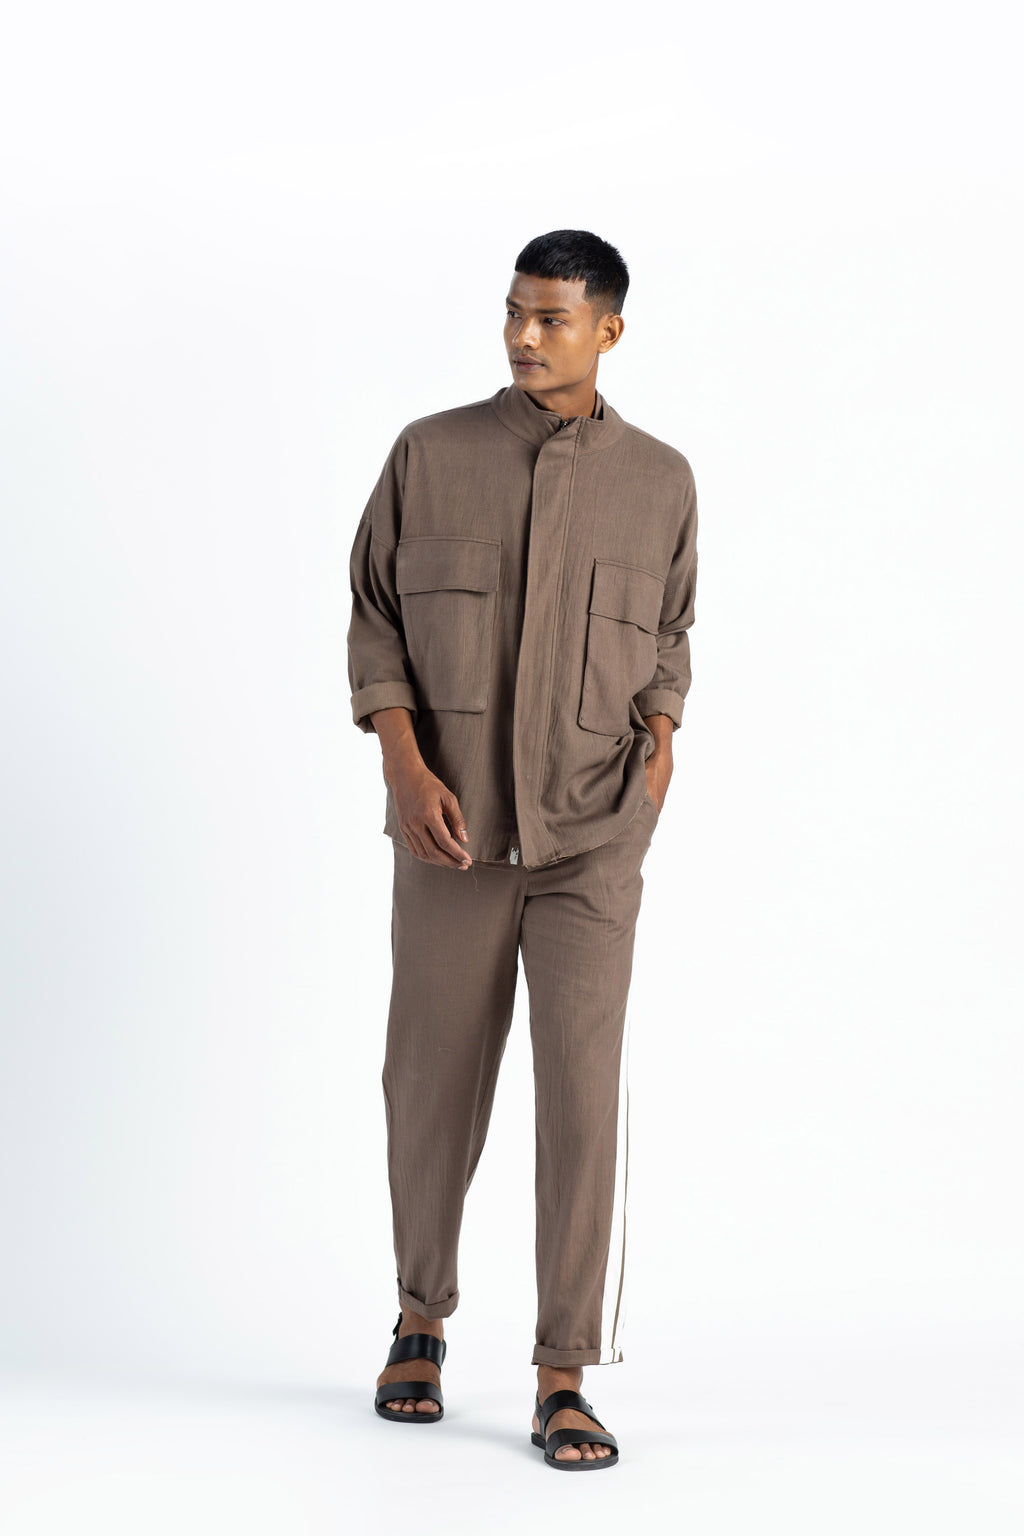 Patch Pocket Jacket co-ord- Cedar (Set of 2)